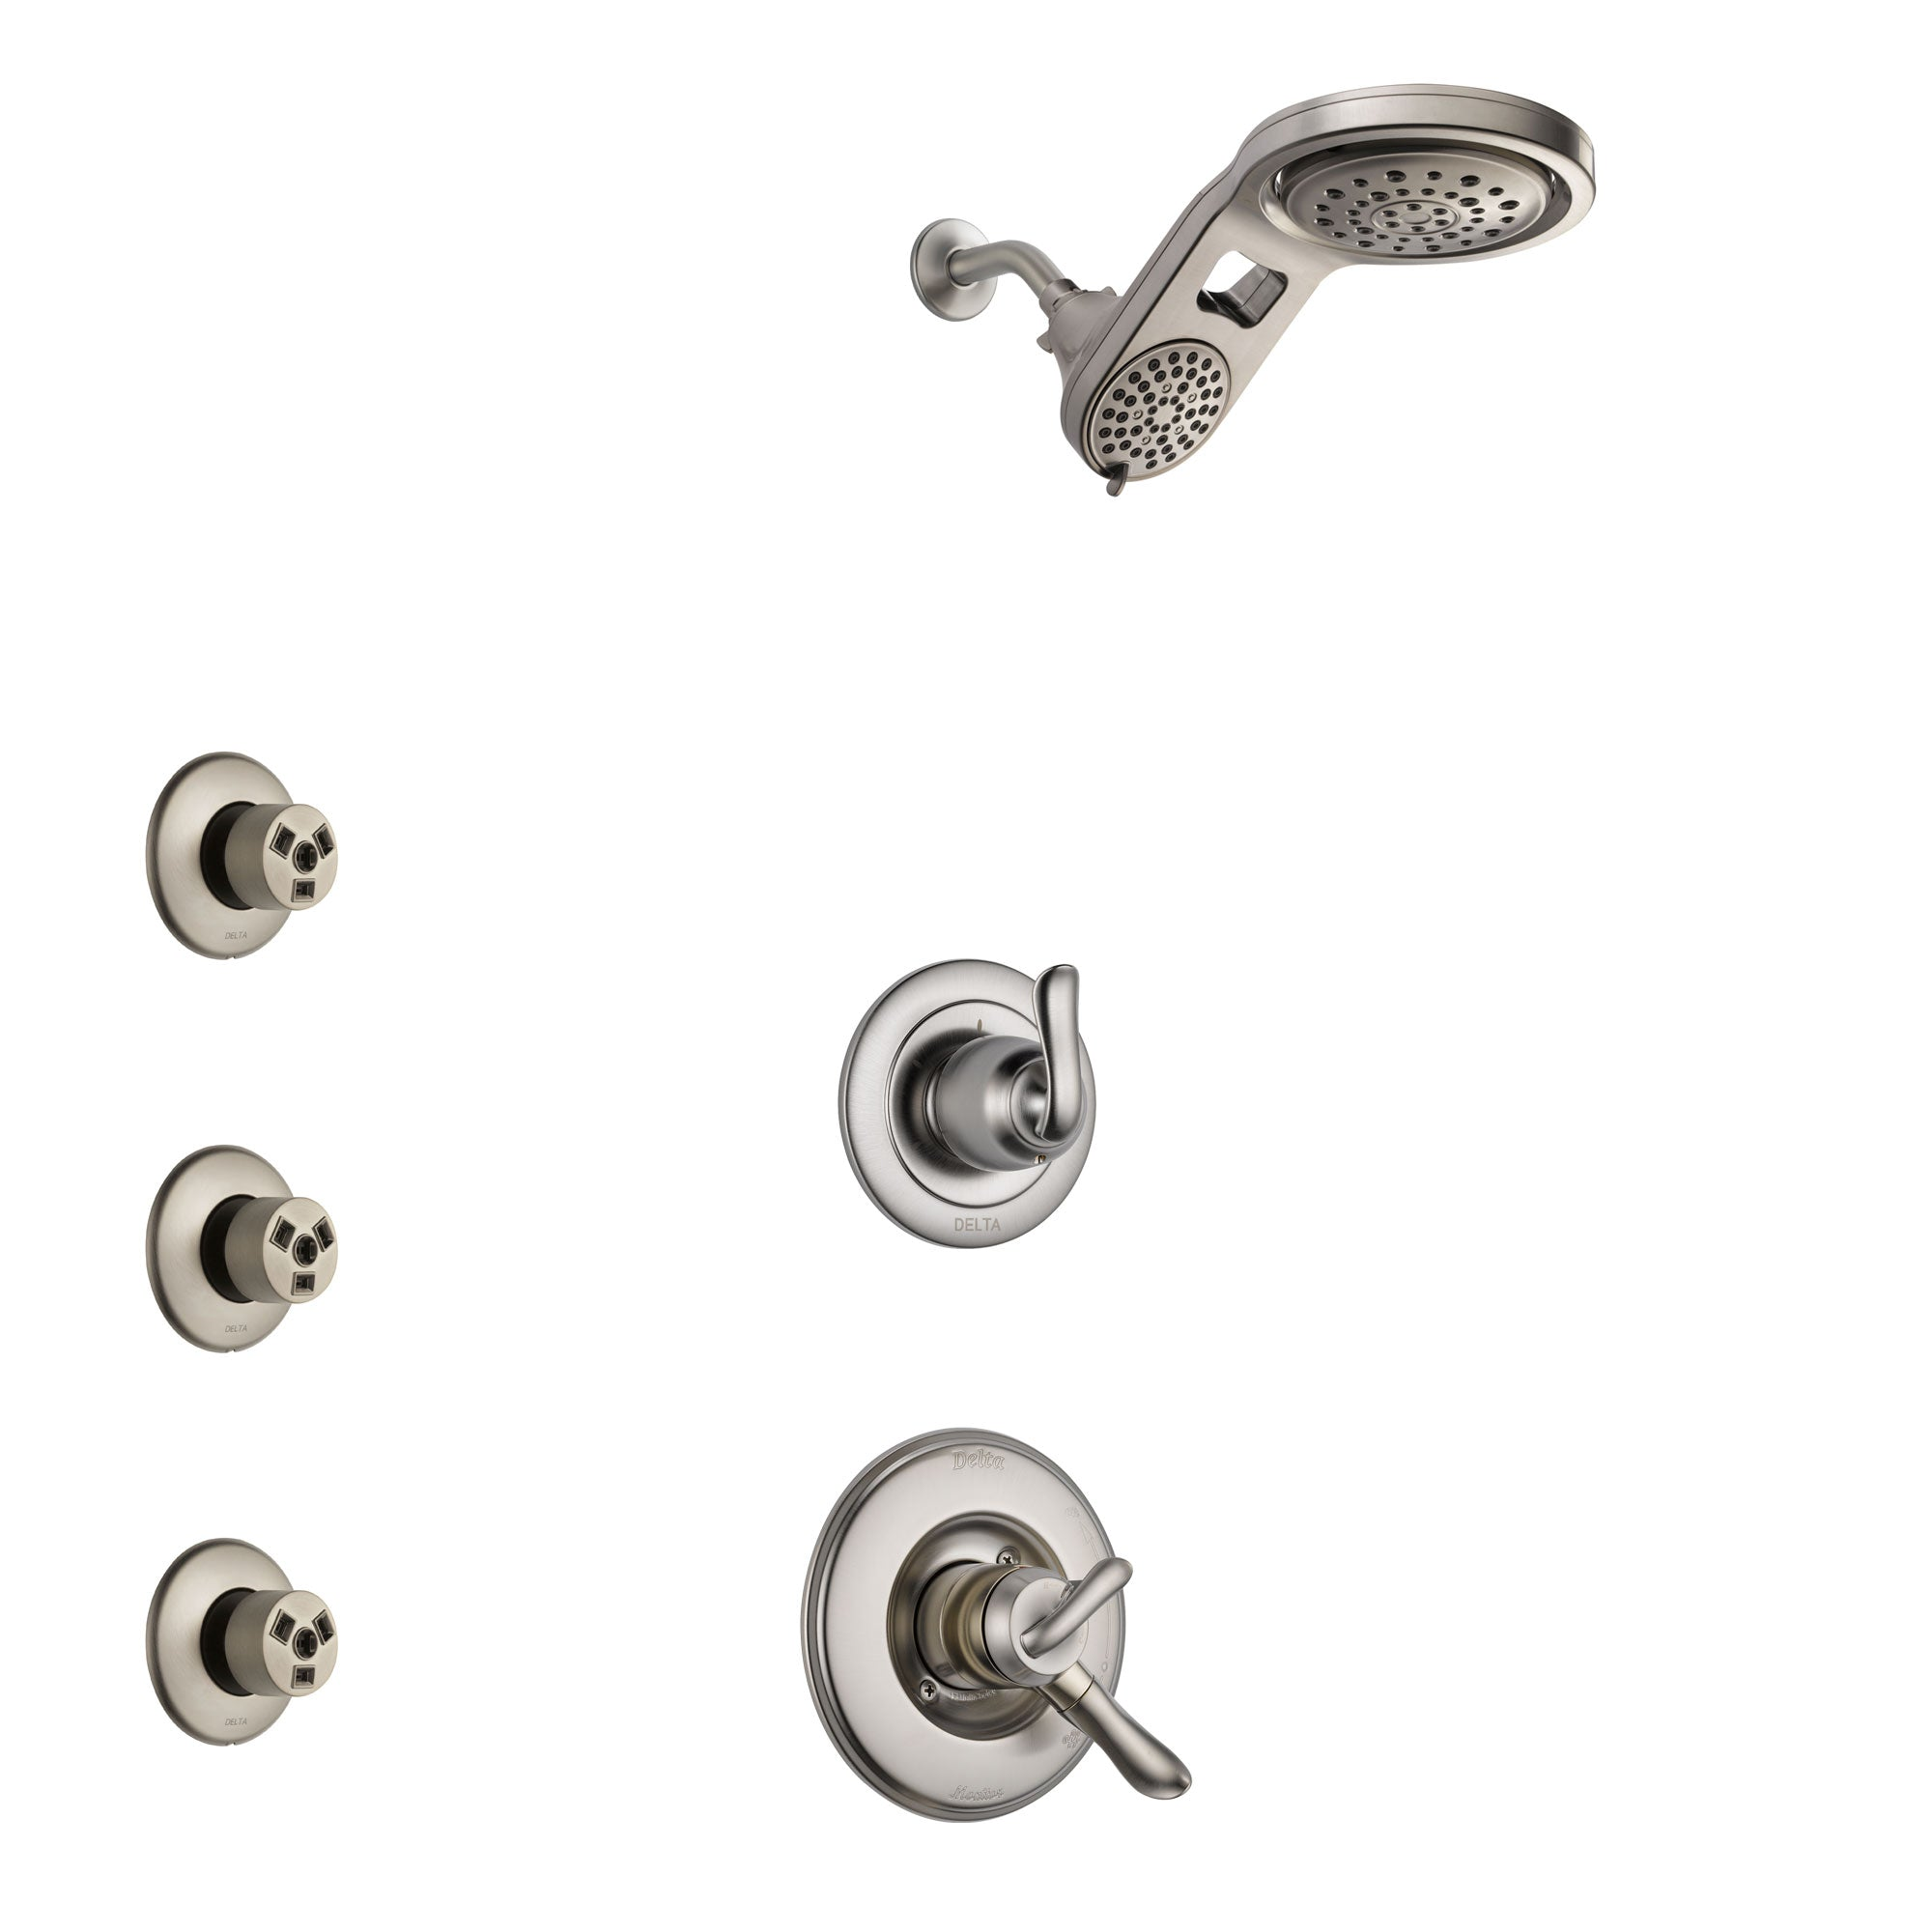 Delta Linden Stainless Steel Finish Shower System with Dual Control Handle, 3-Setting Diverter, Dual Showerhead, and 3 Body Sprays SS1794SS6